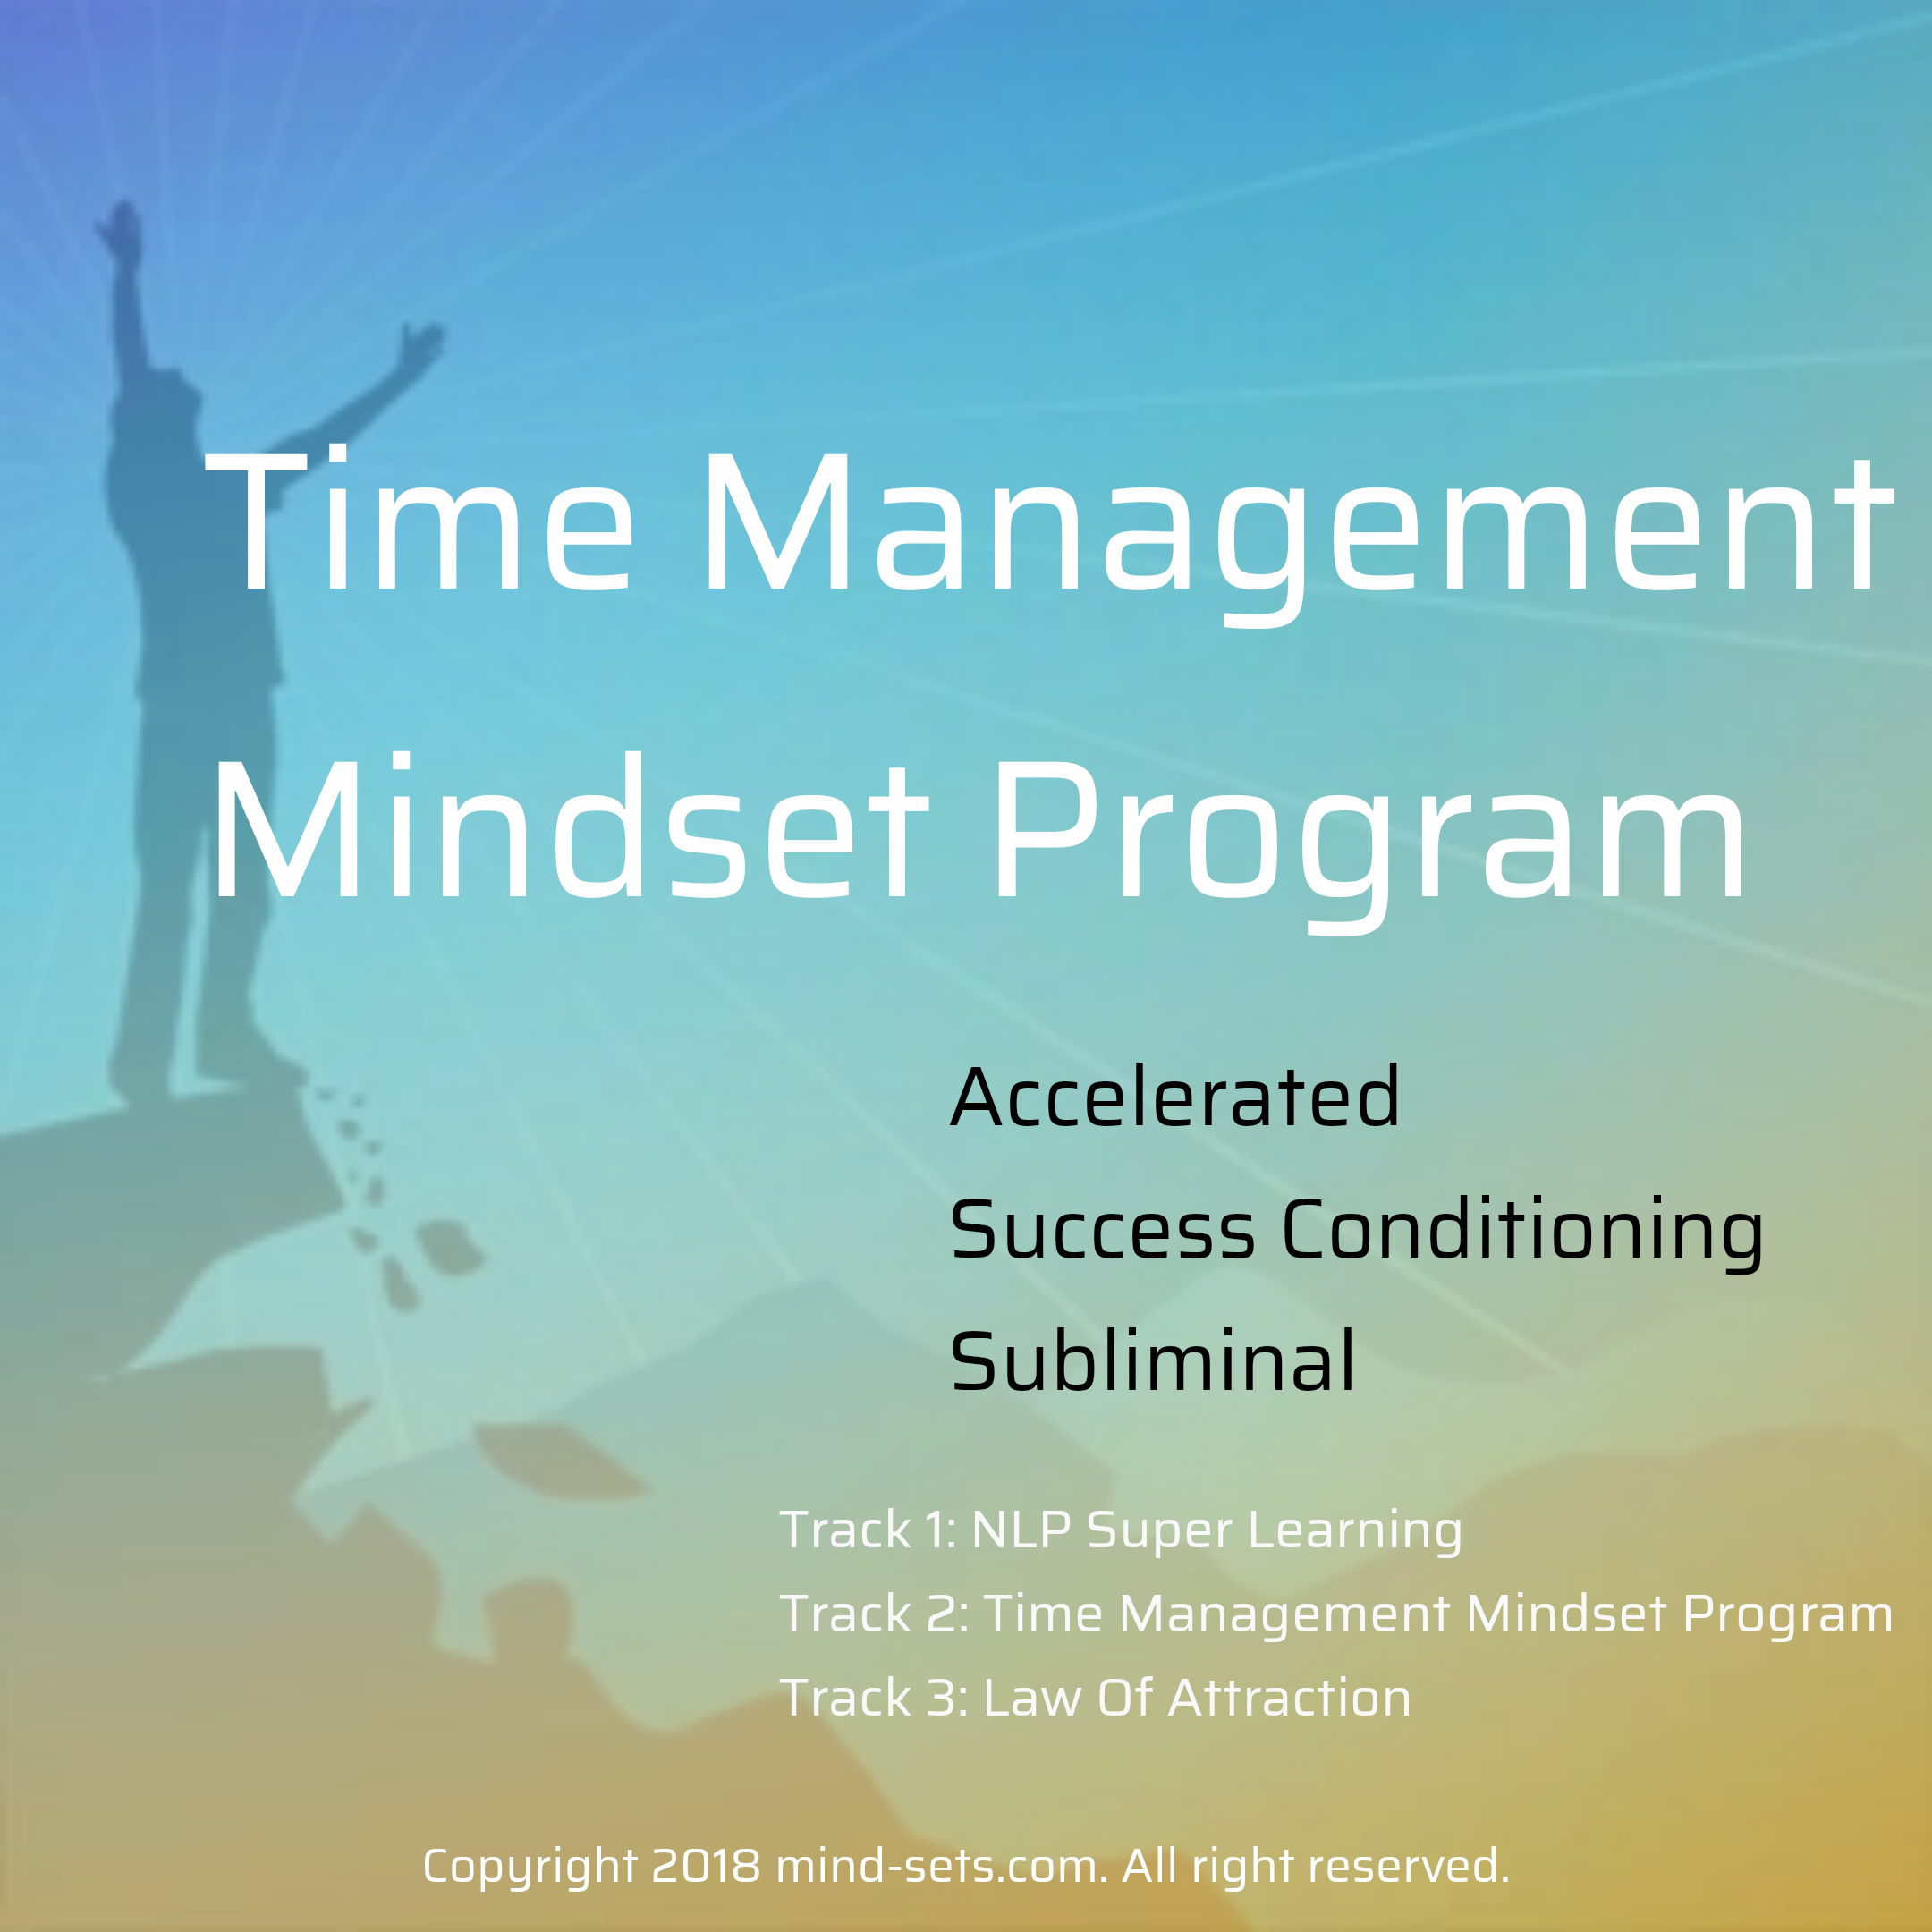 Time Management Mindset Program